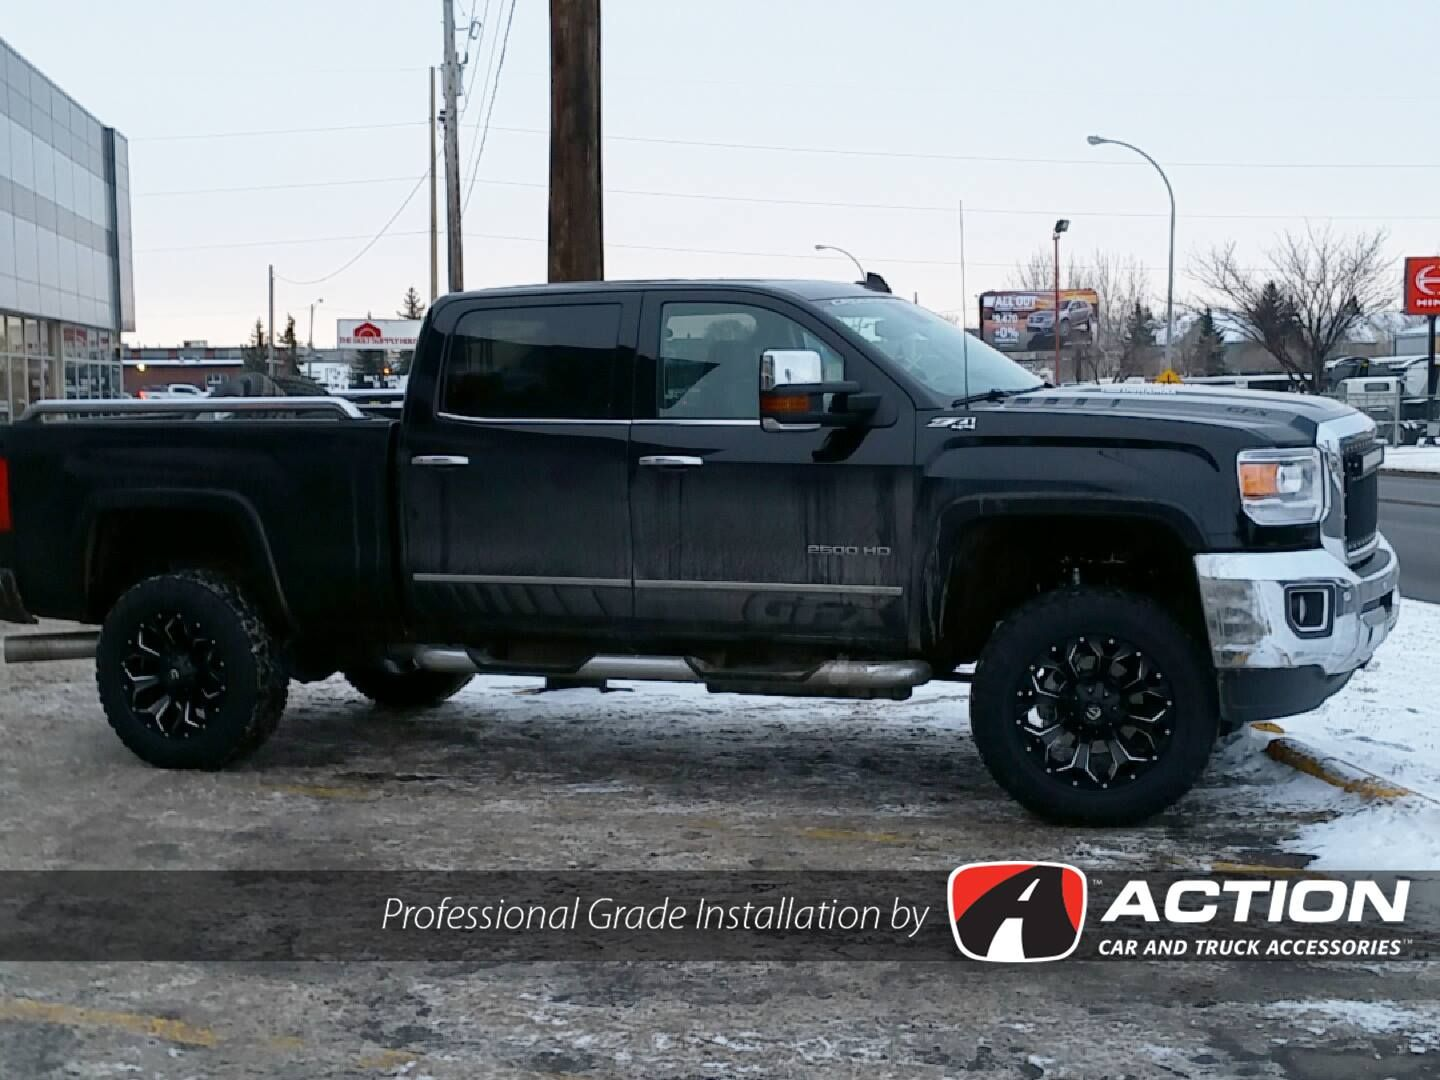 4 Lift Kit By Readylift Suspension Inc Installed On This Gmc By Our Store In Regina Sk Professionalgradeinstallation Lift Kits Installation Cars Trucks